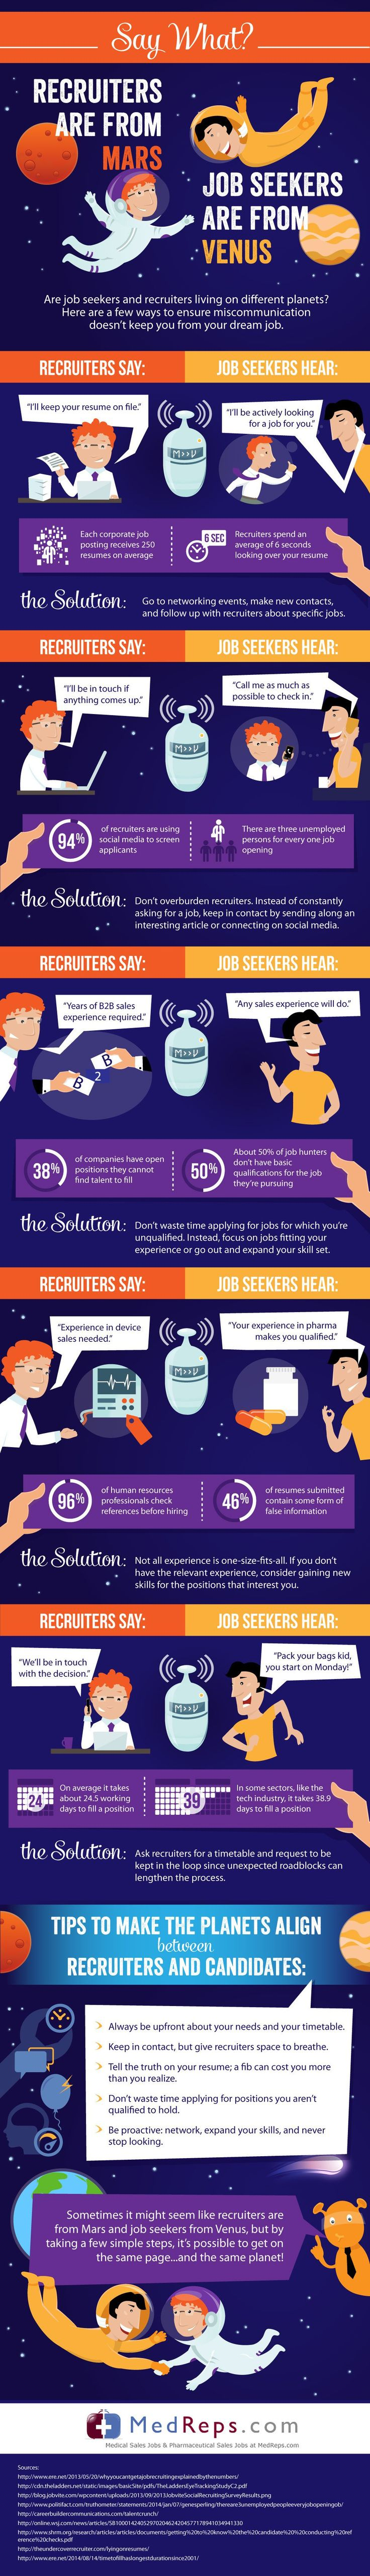 What Recruiters Say—and What They Really Mean